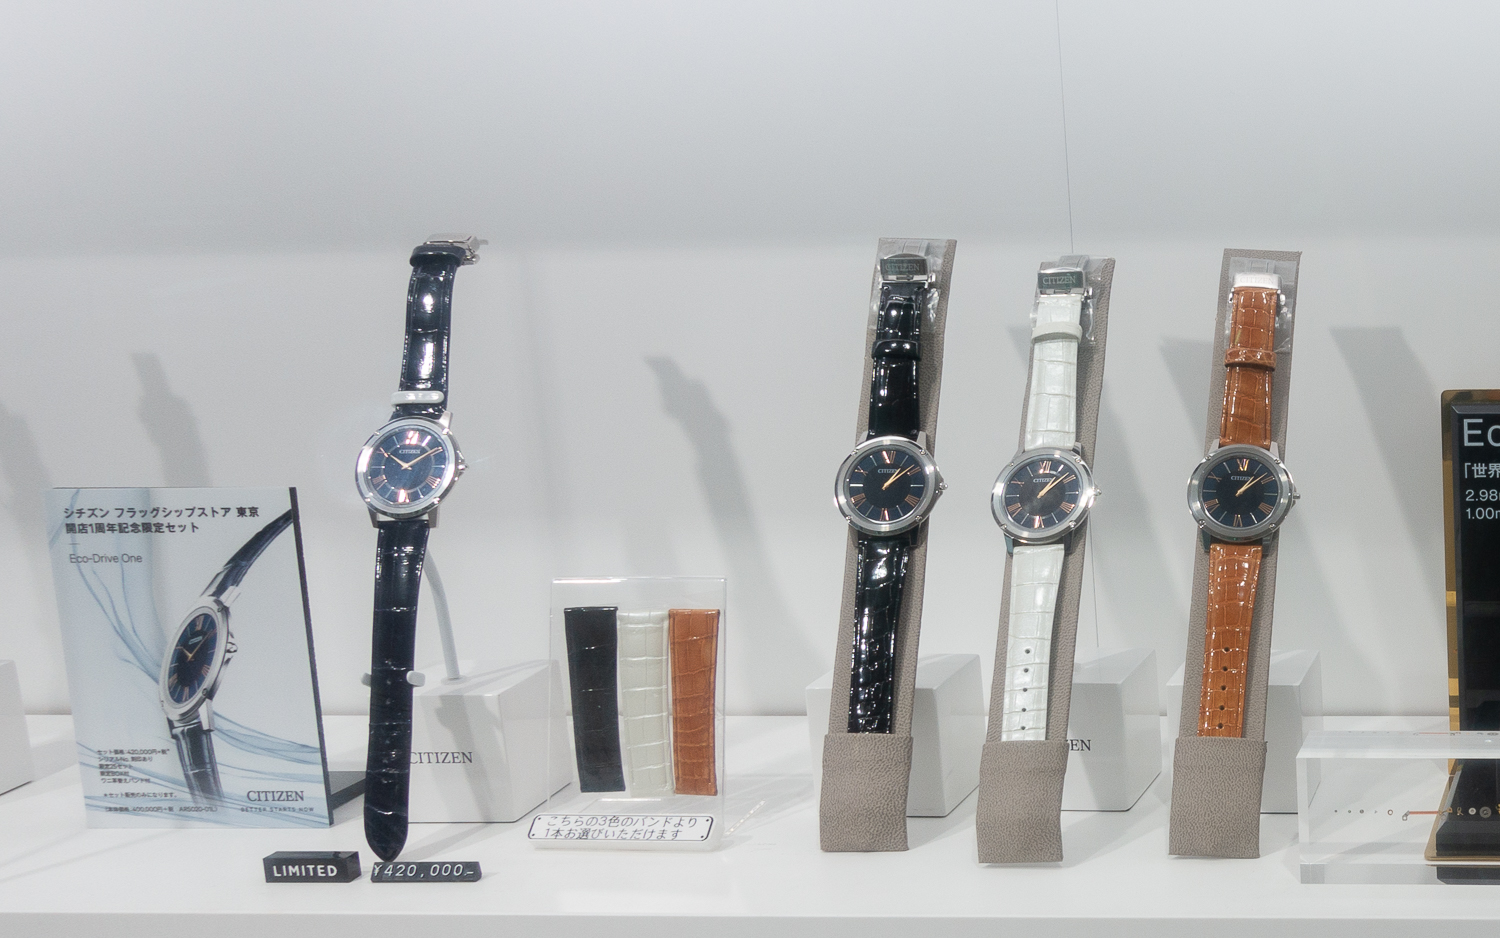 Strap Choices for Eco-Drive One